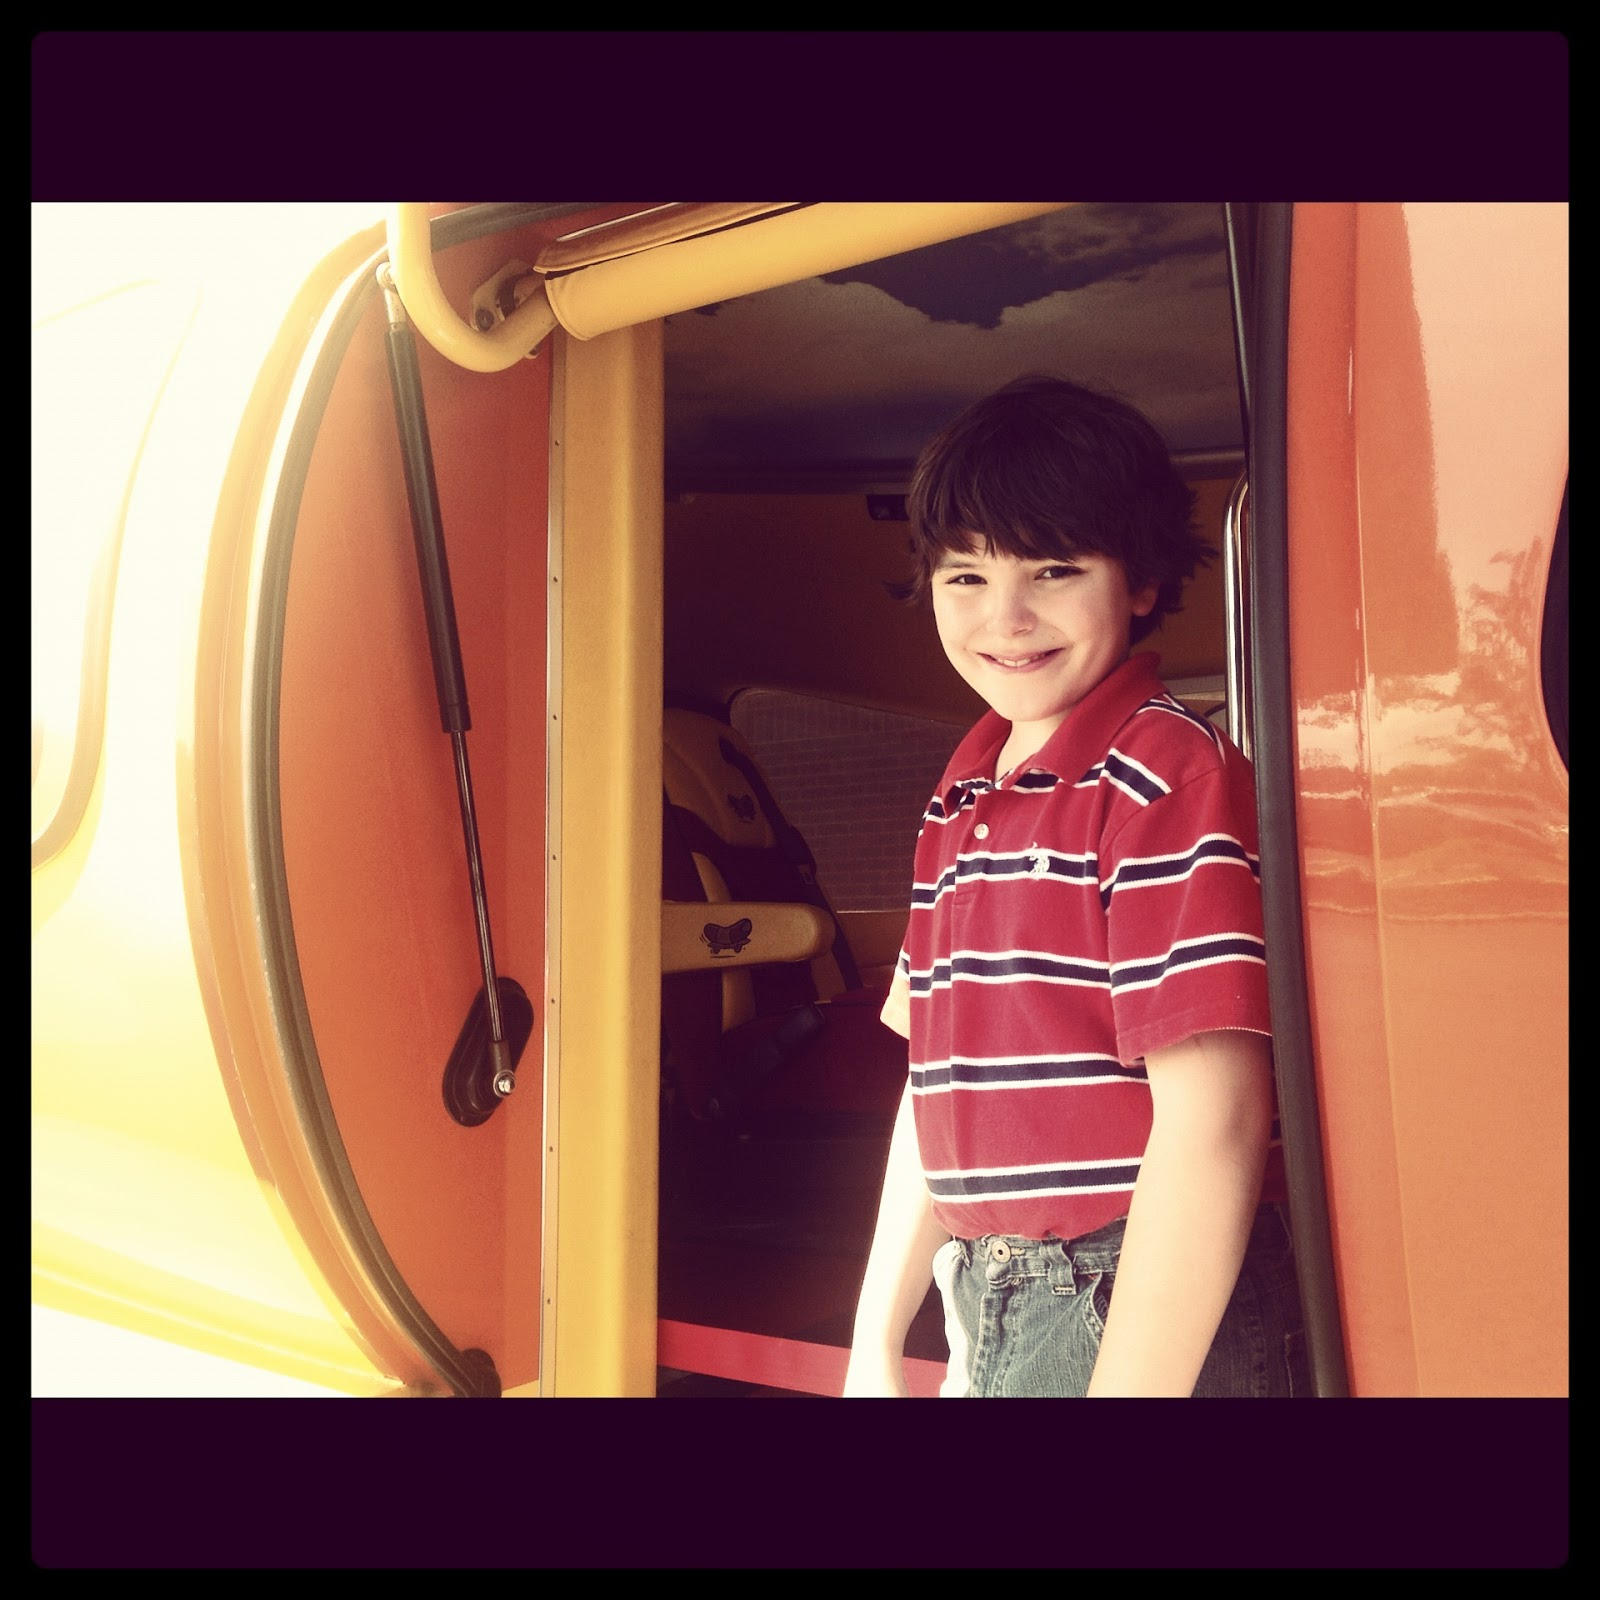 You Can Win A Day In The Wienermobile likewise Caldwell Fun Fairs Fests besides Funny Meme Said Man Ever besides Group Of Vintage And Modern Plastic And Die Cast 670 C E384d6ba9b furthermore 1d9fbu. on oscar mayer weinermobile facebook pic